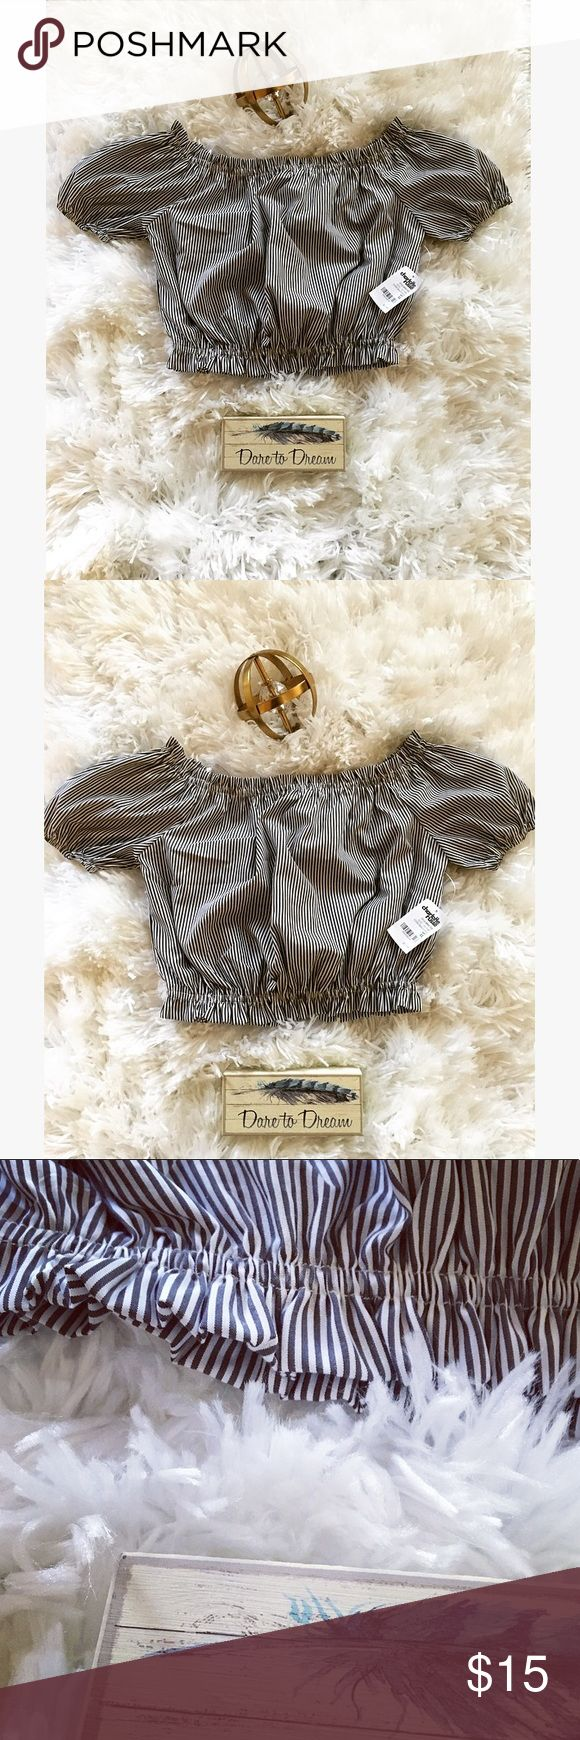 "🦋NEW CHARLOTTE RUSSE Crop Top Size XS🦋 ""Oh my Crop Top"" said the pretty young lady lol! Wow! How about a brand new Charlotte Russe Crop Top size XS. If you are a size small or medium you will fit into this because this crop top stretches. It comes with its tags and is super comfortable. It's part of the Summer & Fall Collection. It's white and dark blue striped. Don't forget to bundle up on more than 4 items and receive a discount. If you're looking for something particular and don't see…"